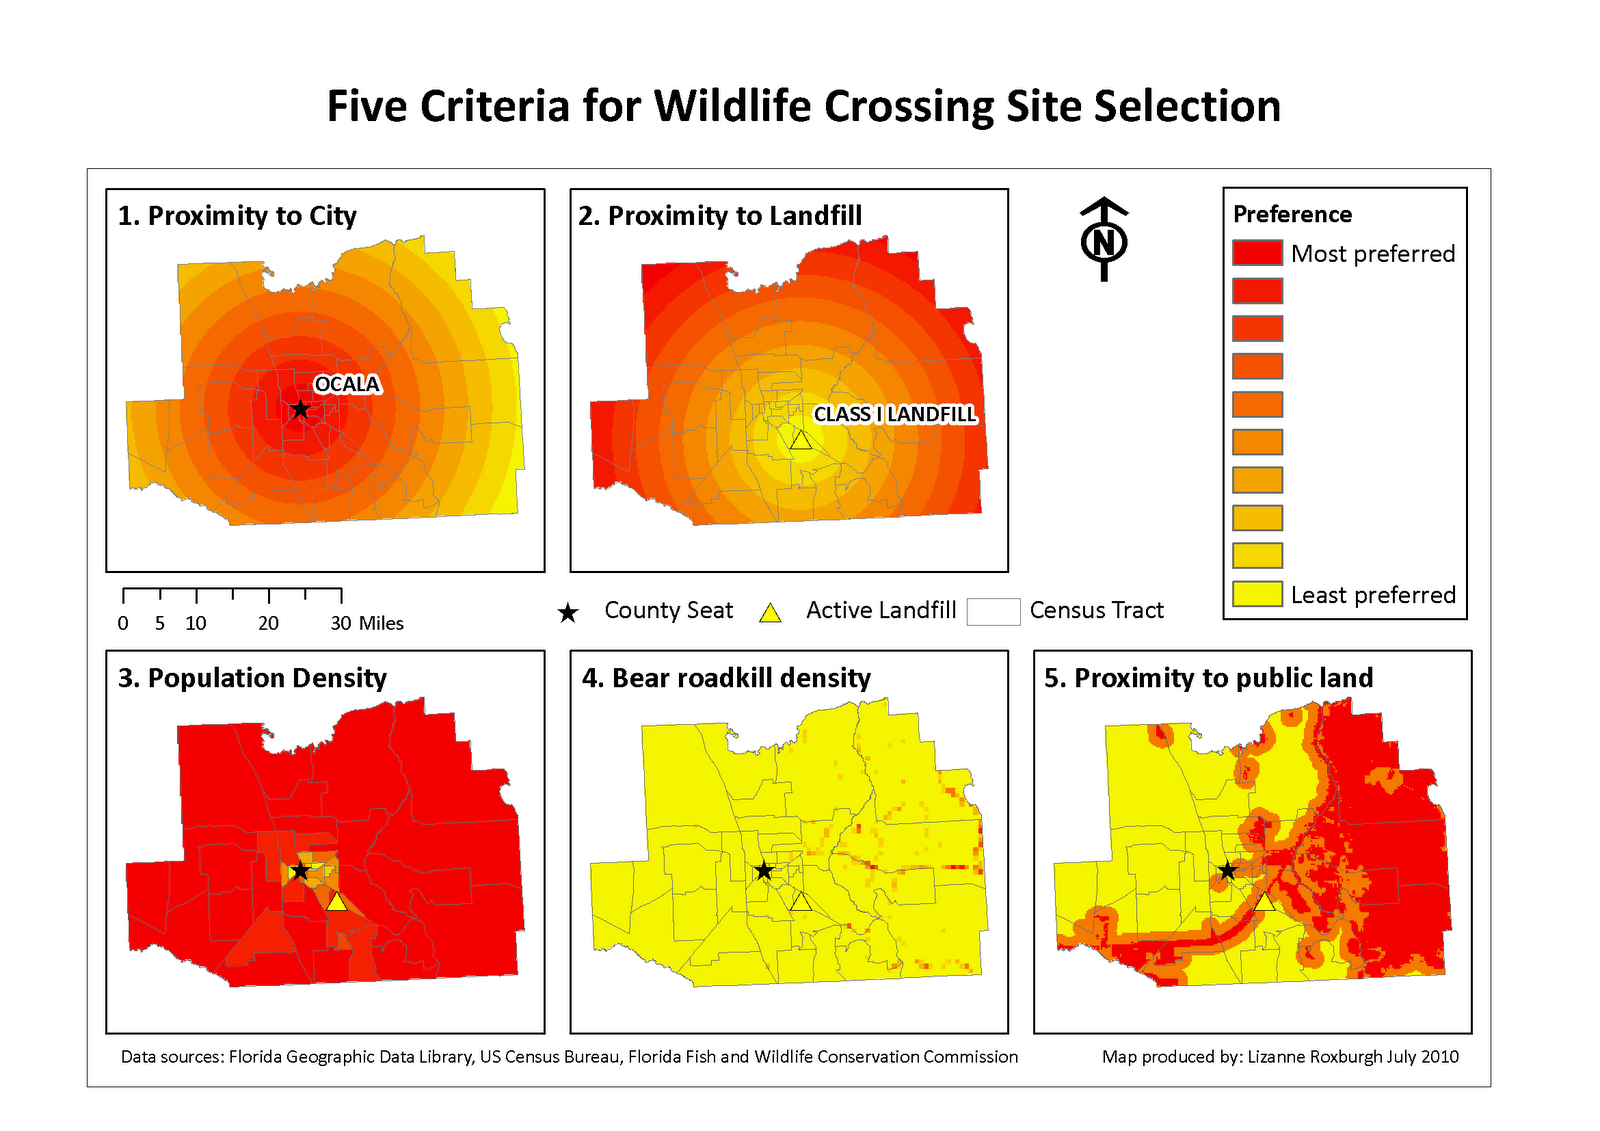 maps of the five criteria chosen for site selection